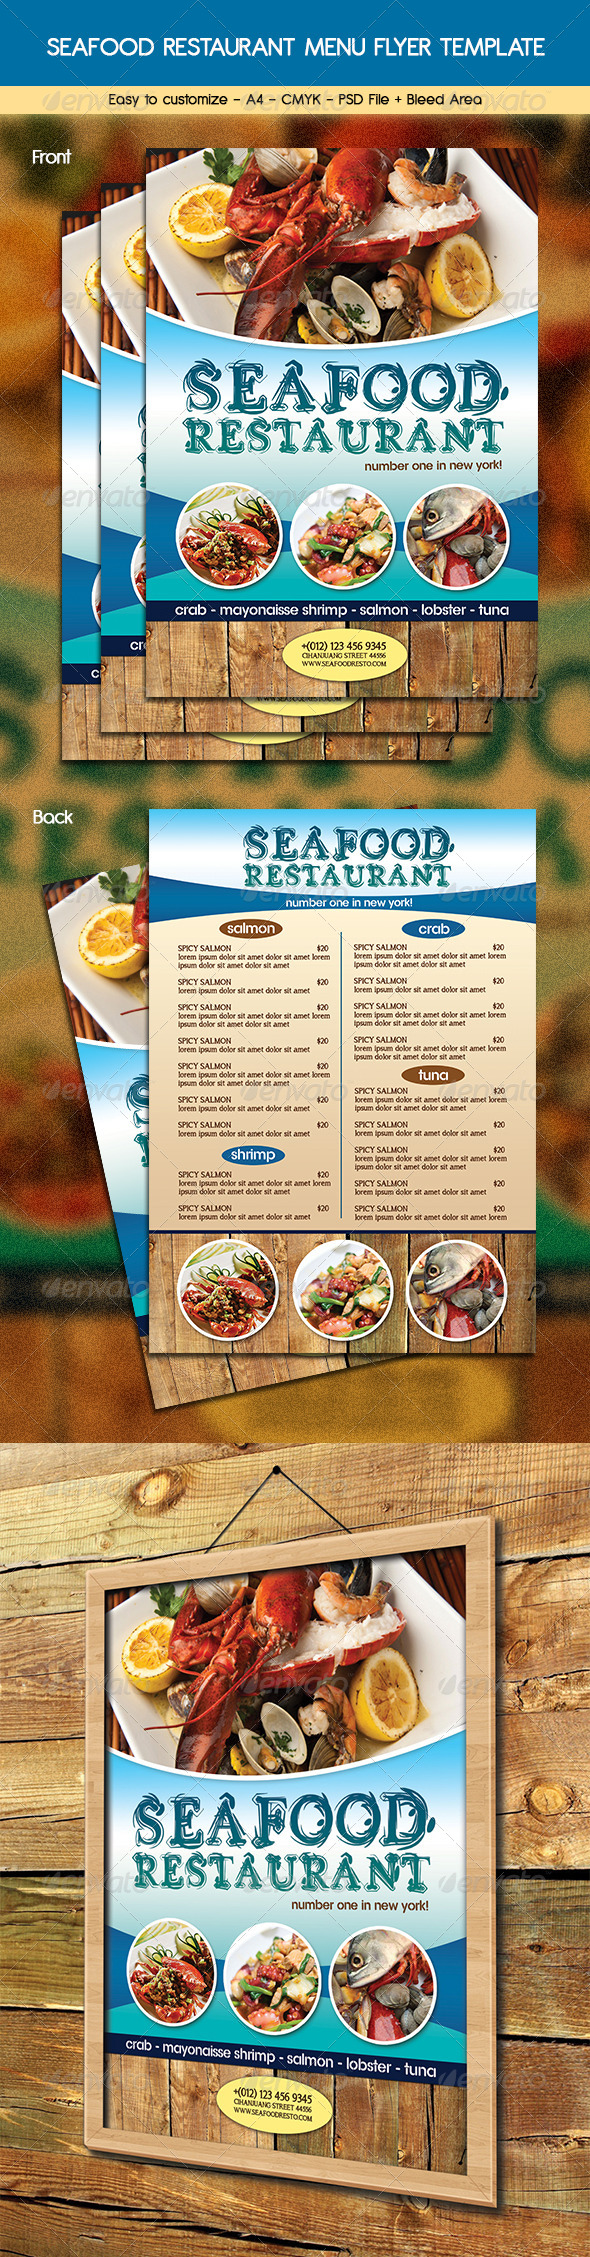 Seafood Restaurant Menu Flyer - Food Menus Print Templates